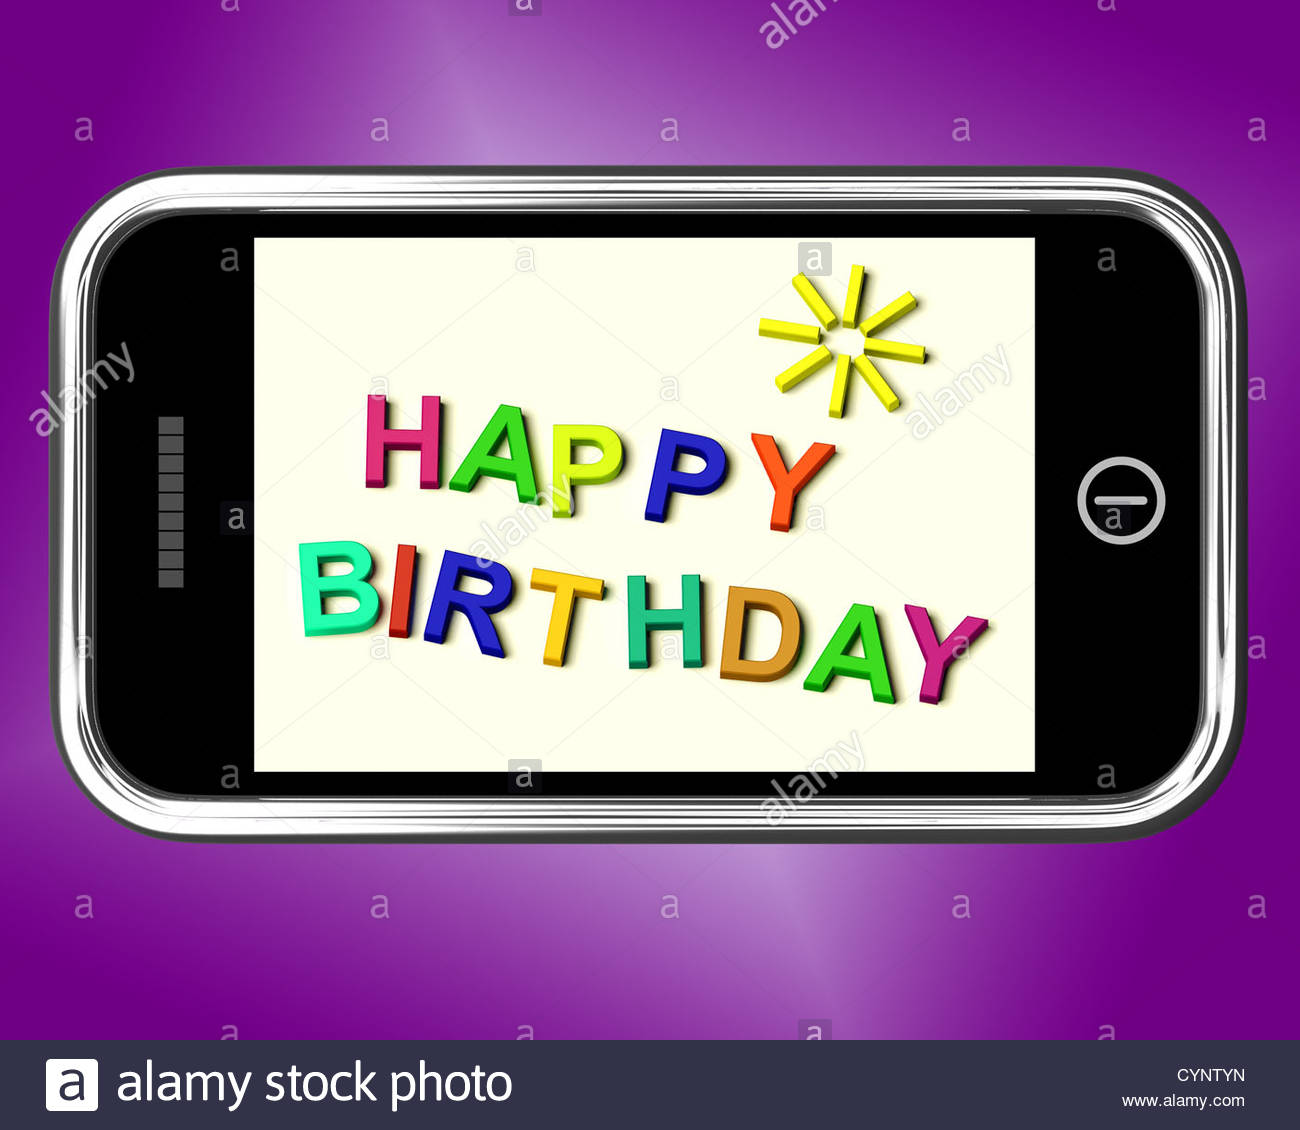 happy birthday picture messages mobile ; happy-birthday-message-on-mobile-phone-showing-internet-greeting-CYNTYN